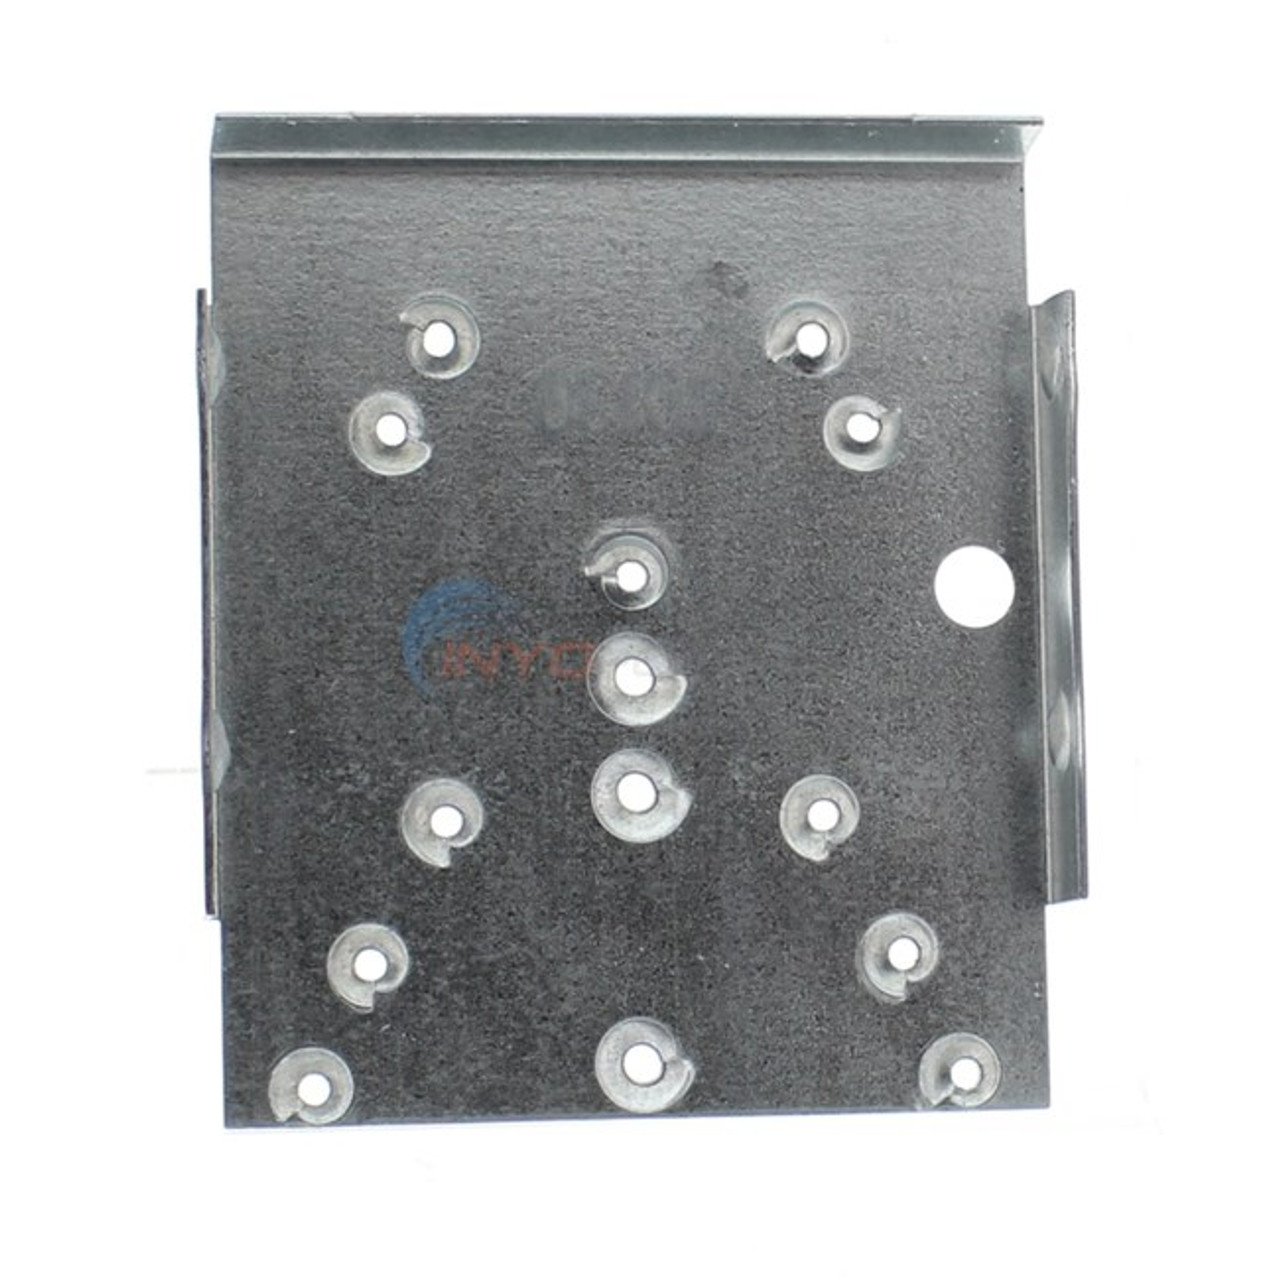 "Wilbar Oval Pool 4"" Top Plate - 10136 - Buy 3 or More and Save 10%"